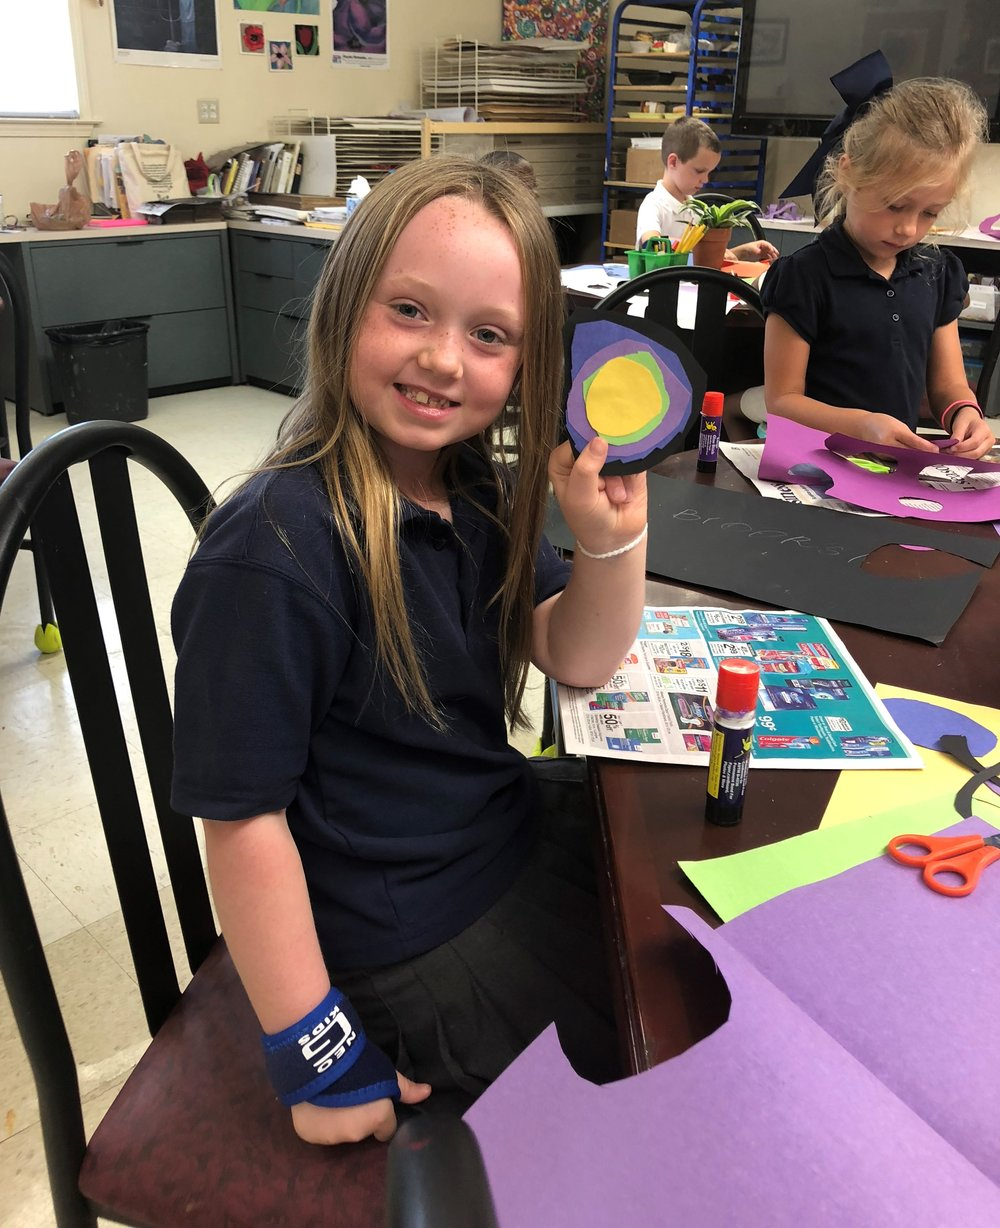 1st grade girl with project.jpg